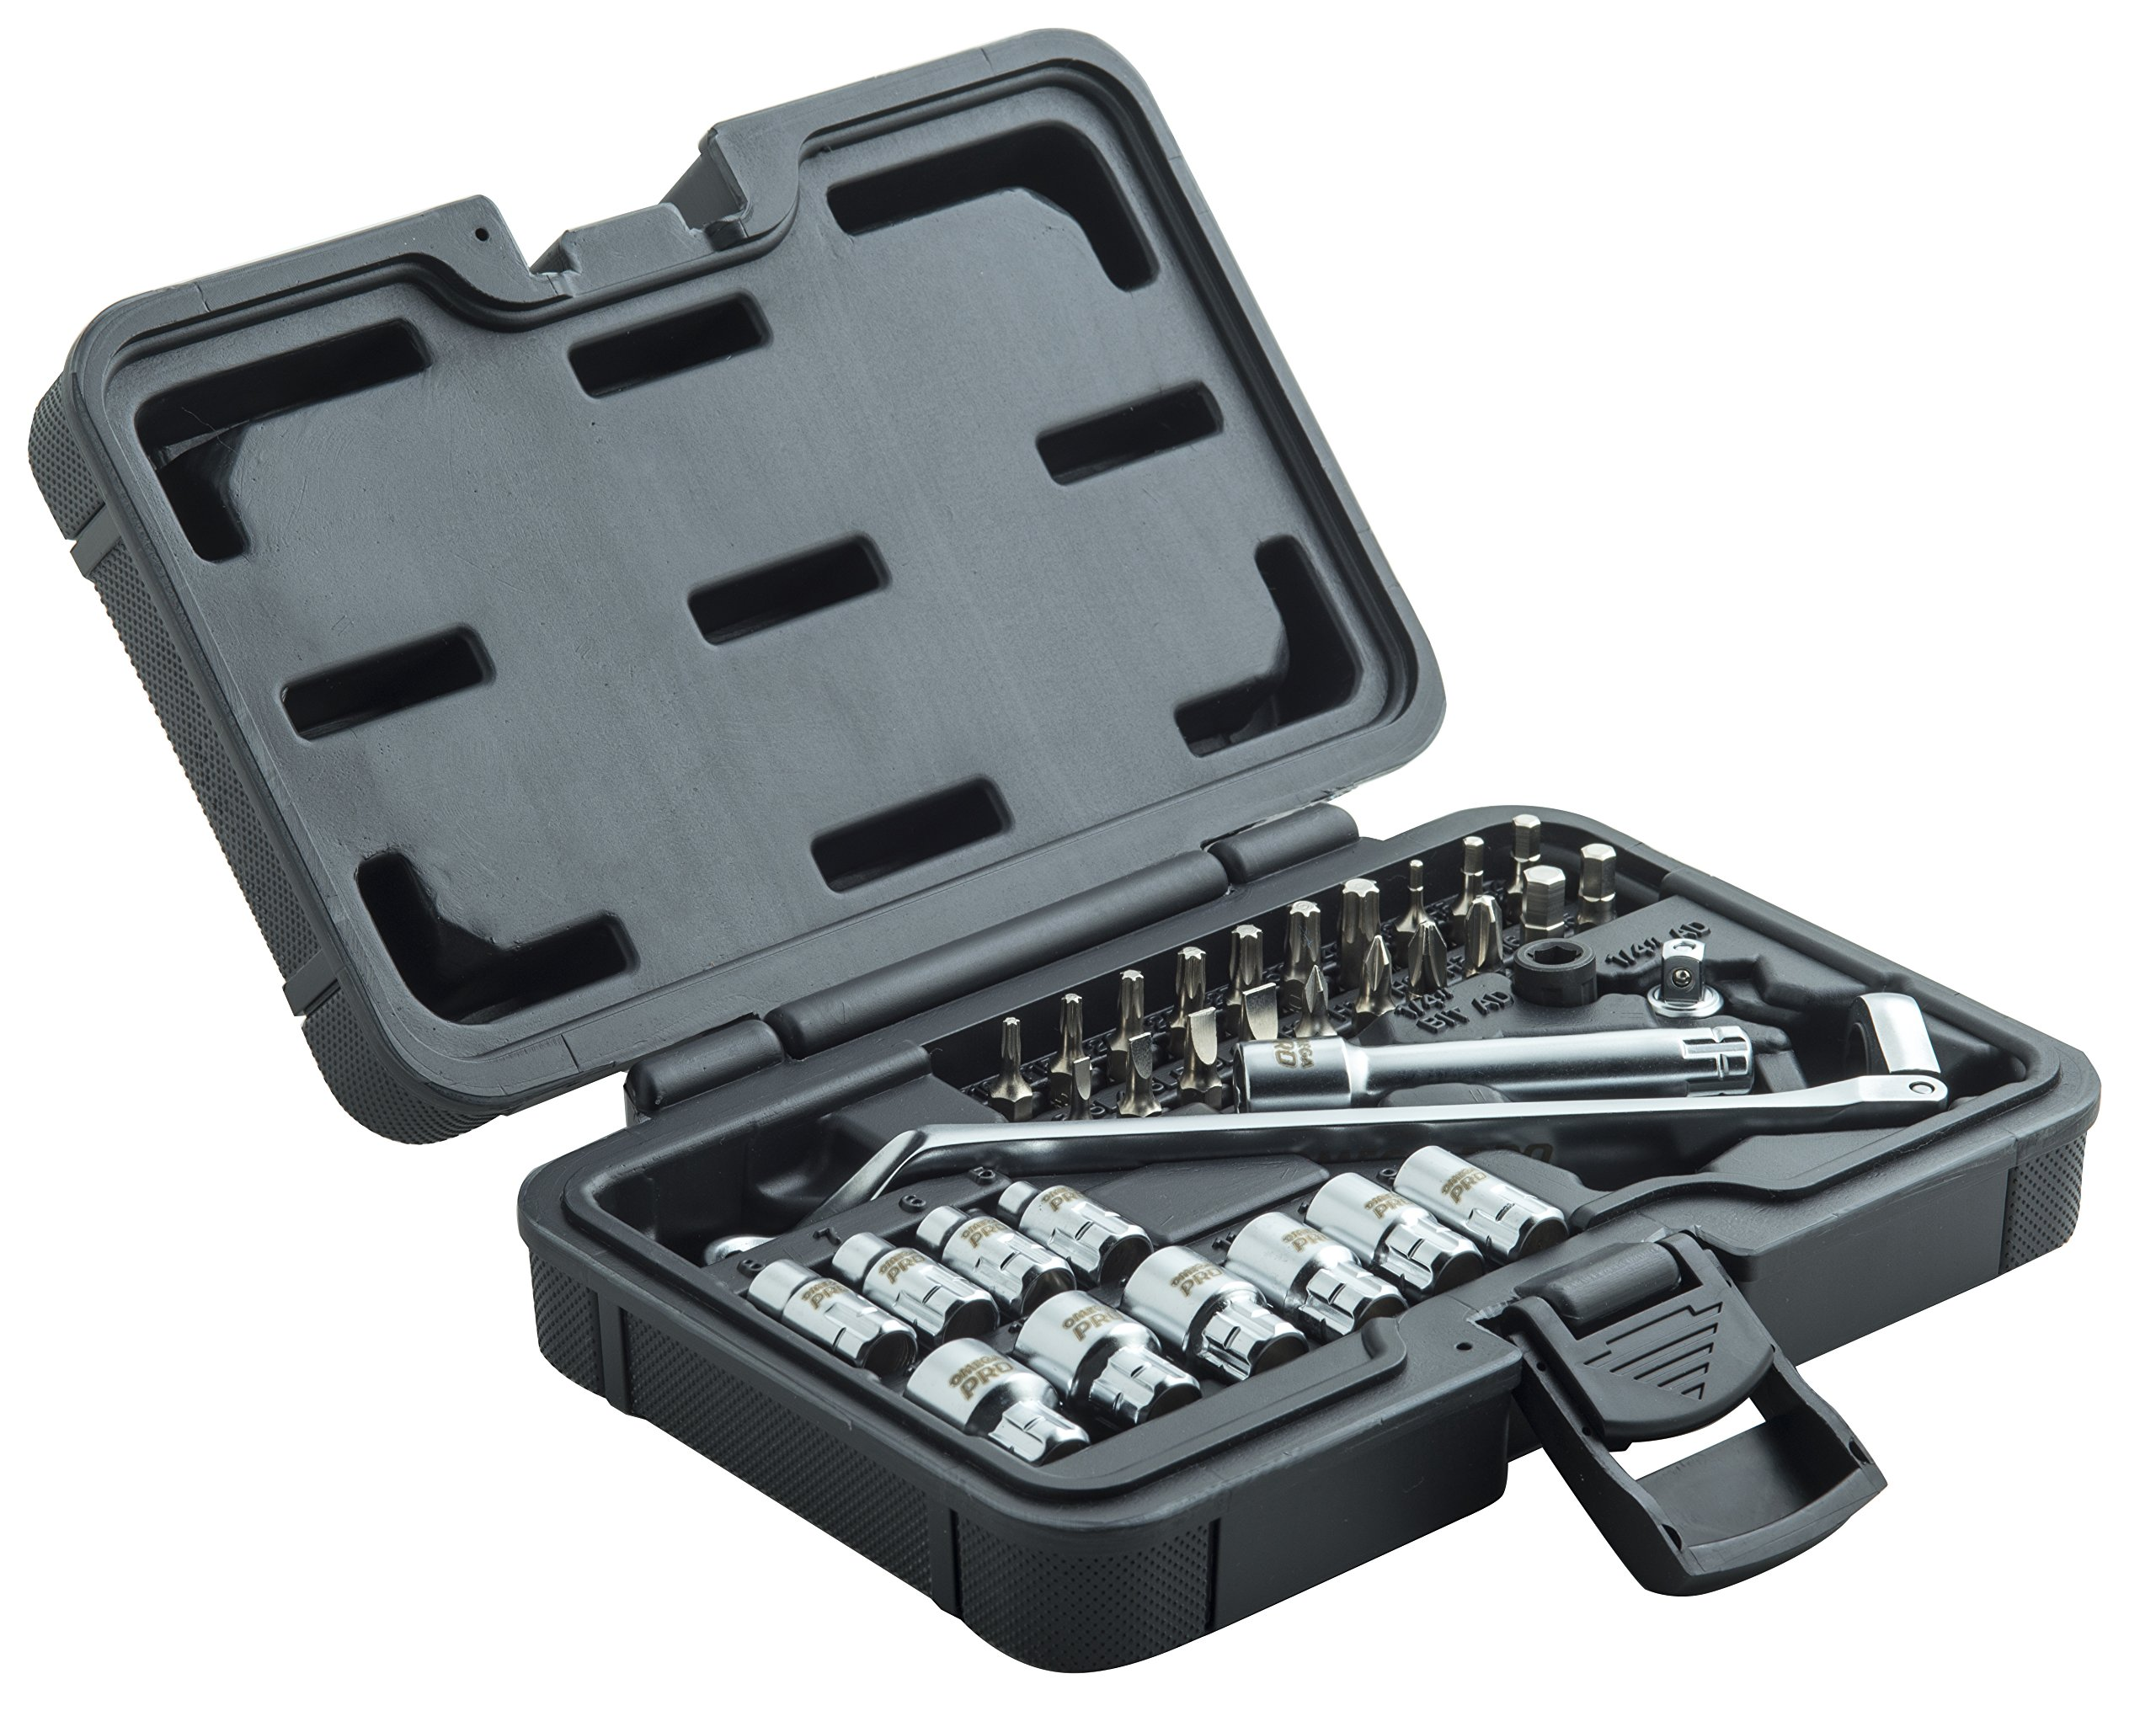 Omega Pro Go-Through Socket Set and Wrench - 1/2 Inch Drive with Flexible Ratchet - 34 Pieces in Molded Case for Easy Organization